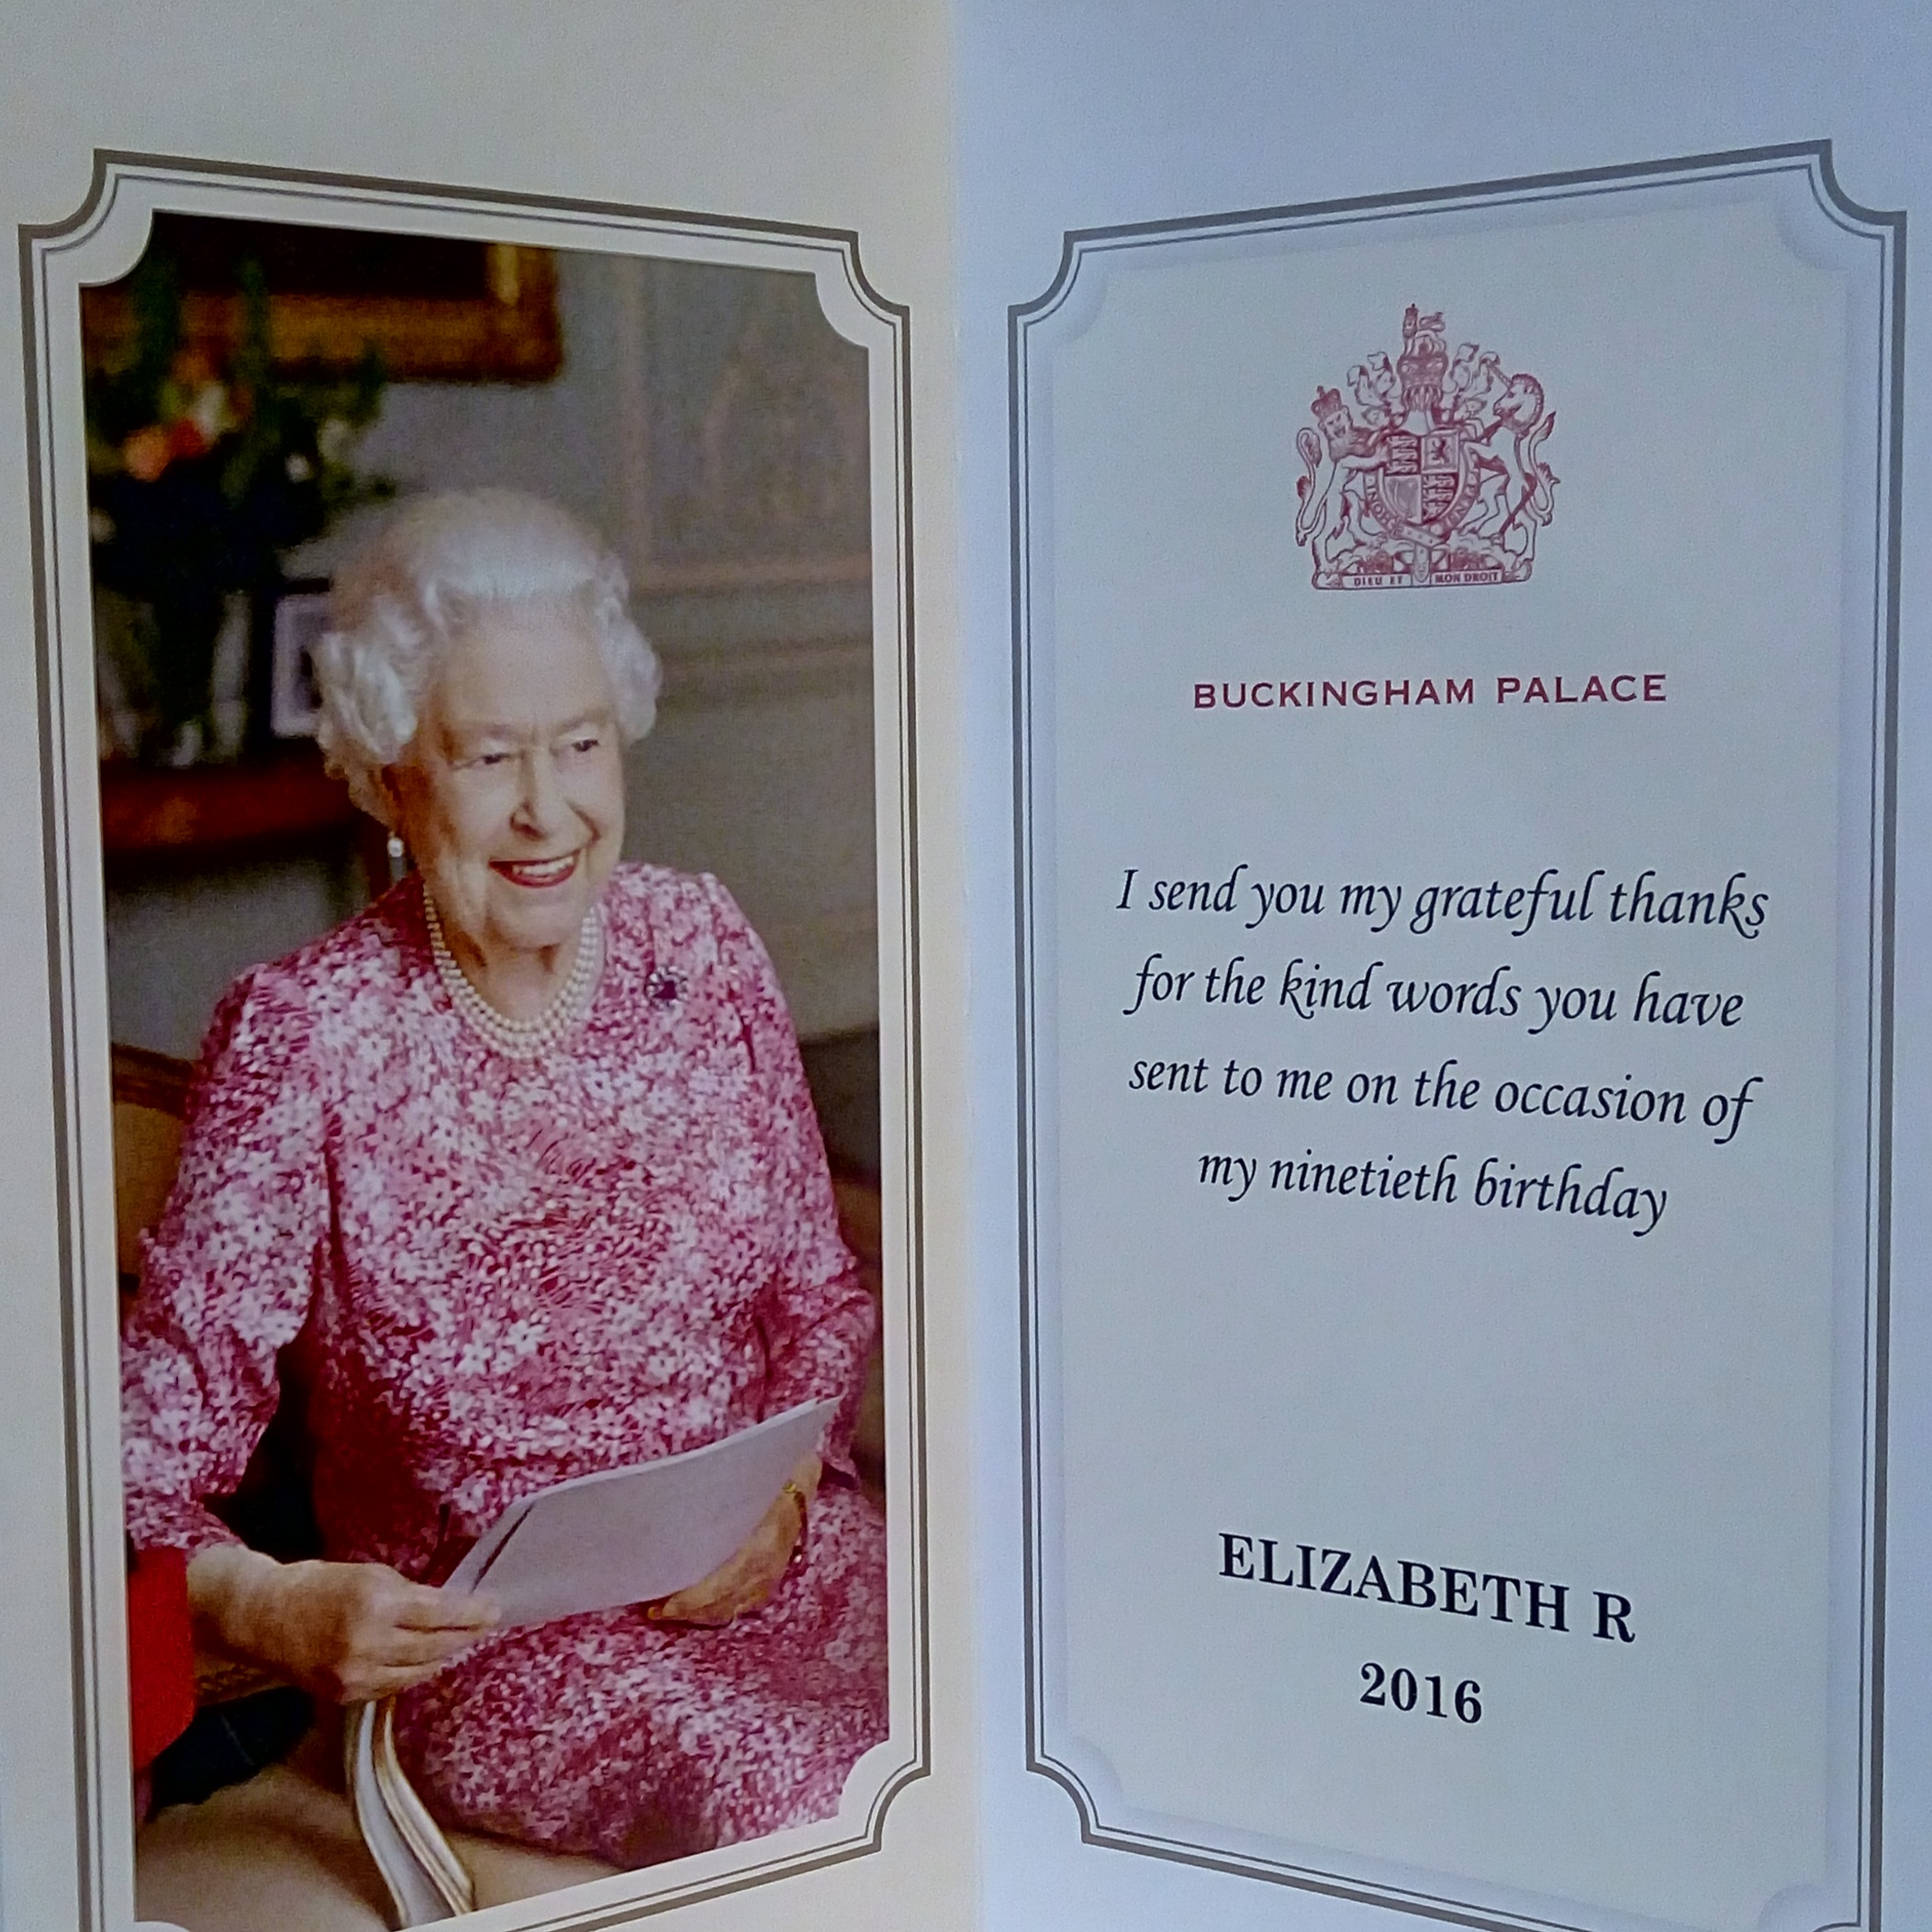 Queen, Queen Elizabeth II, royalty